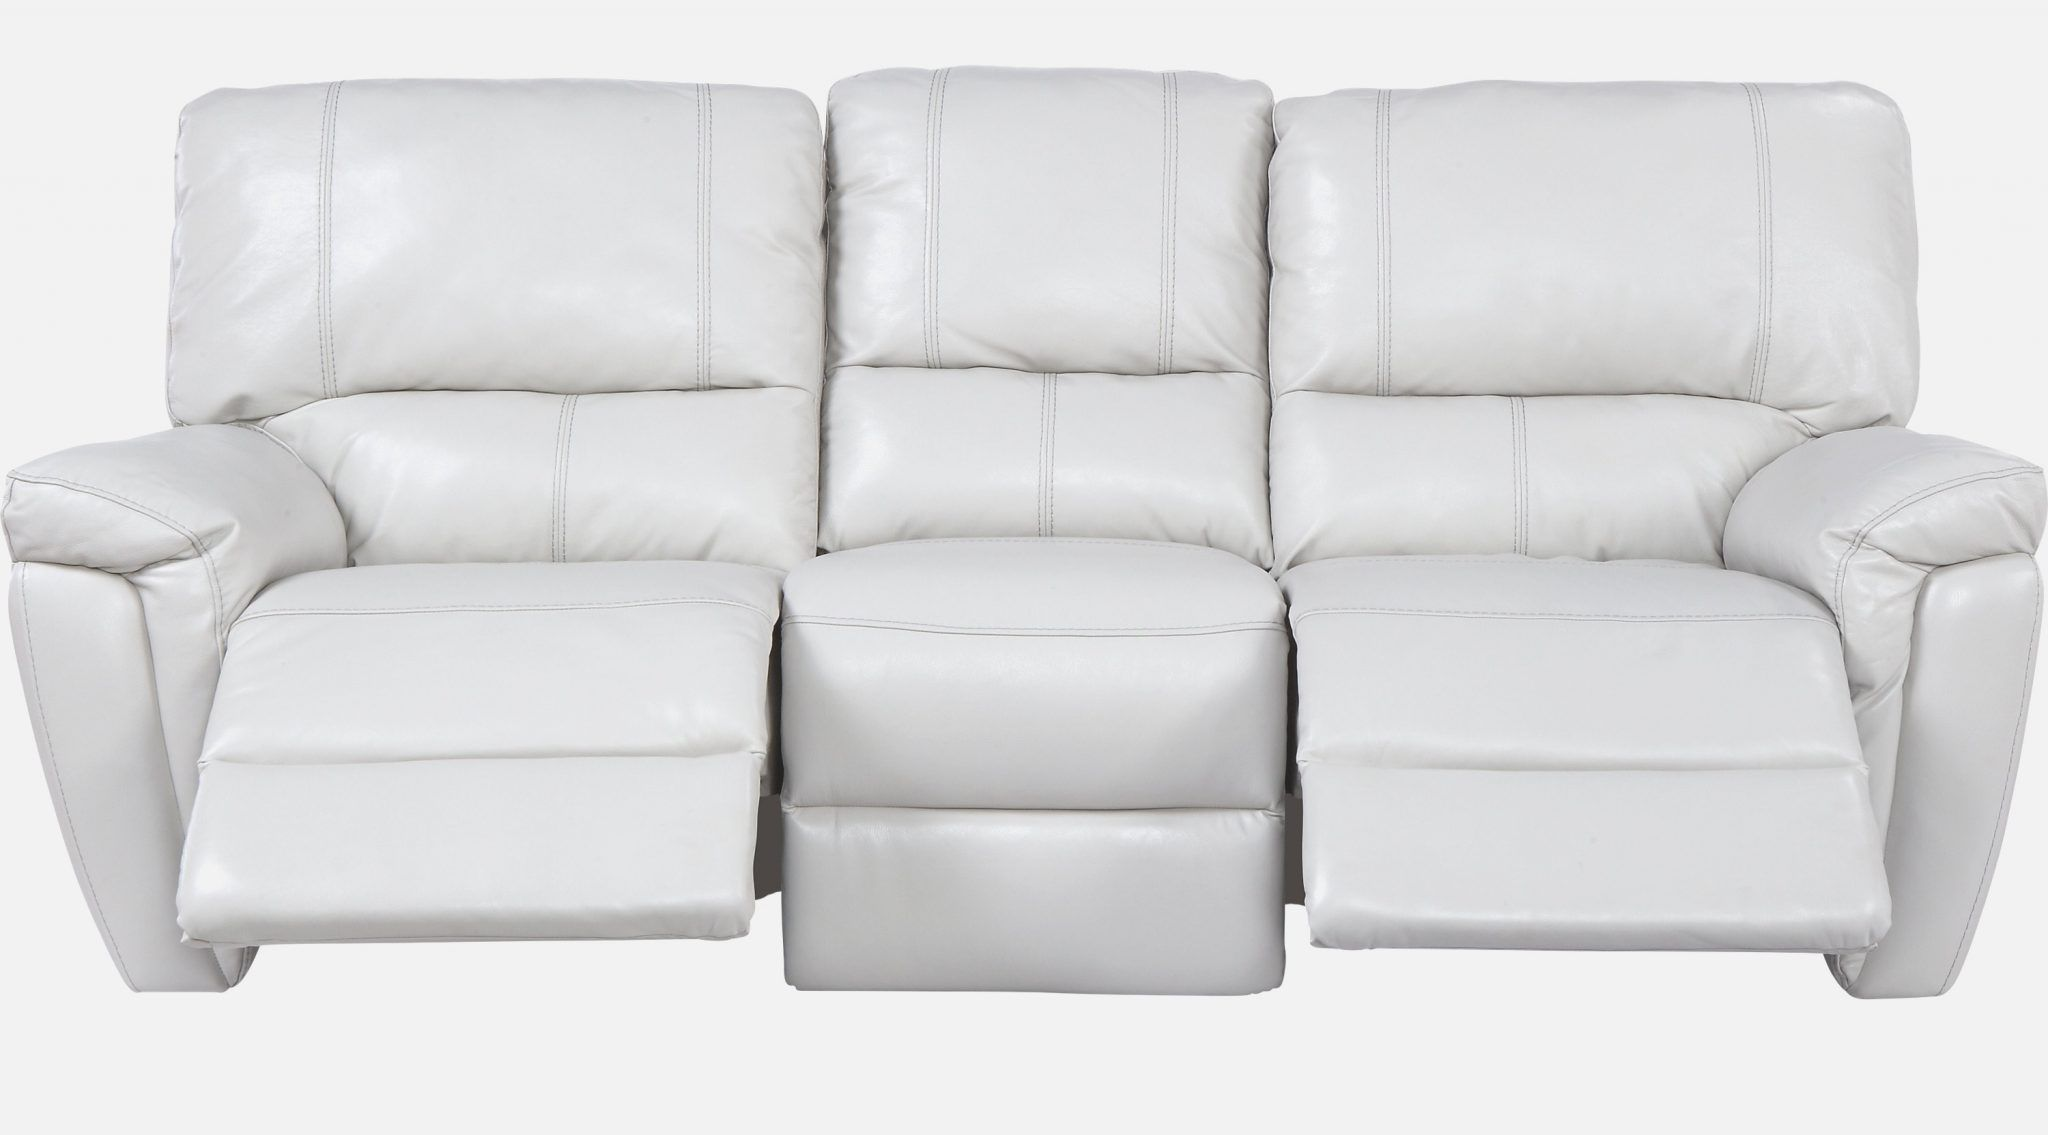 Leather Sofa Company Cardiff Reviews How To Cover Cushions Without Sewing Costco Furniture Recliner Cabinets Matttroy